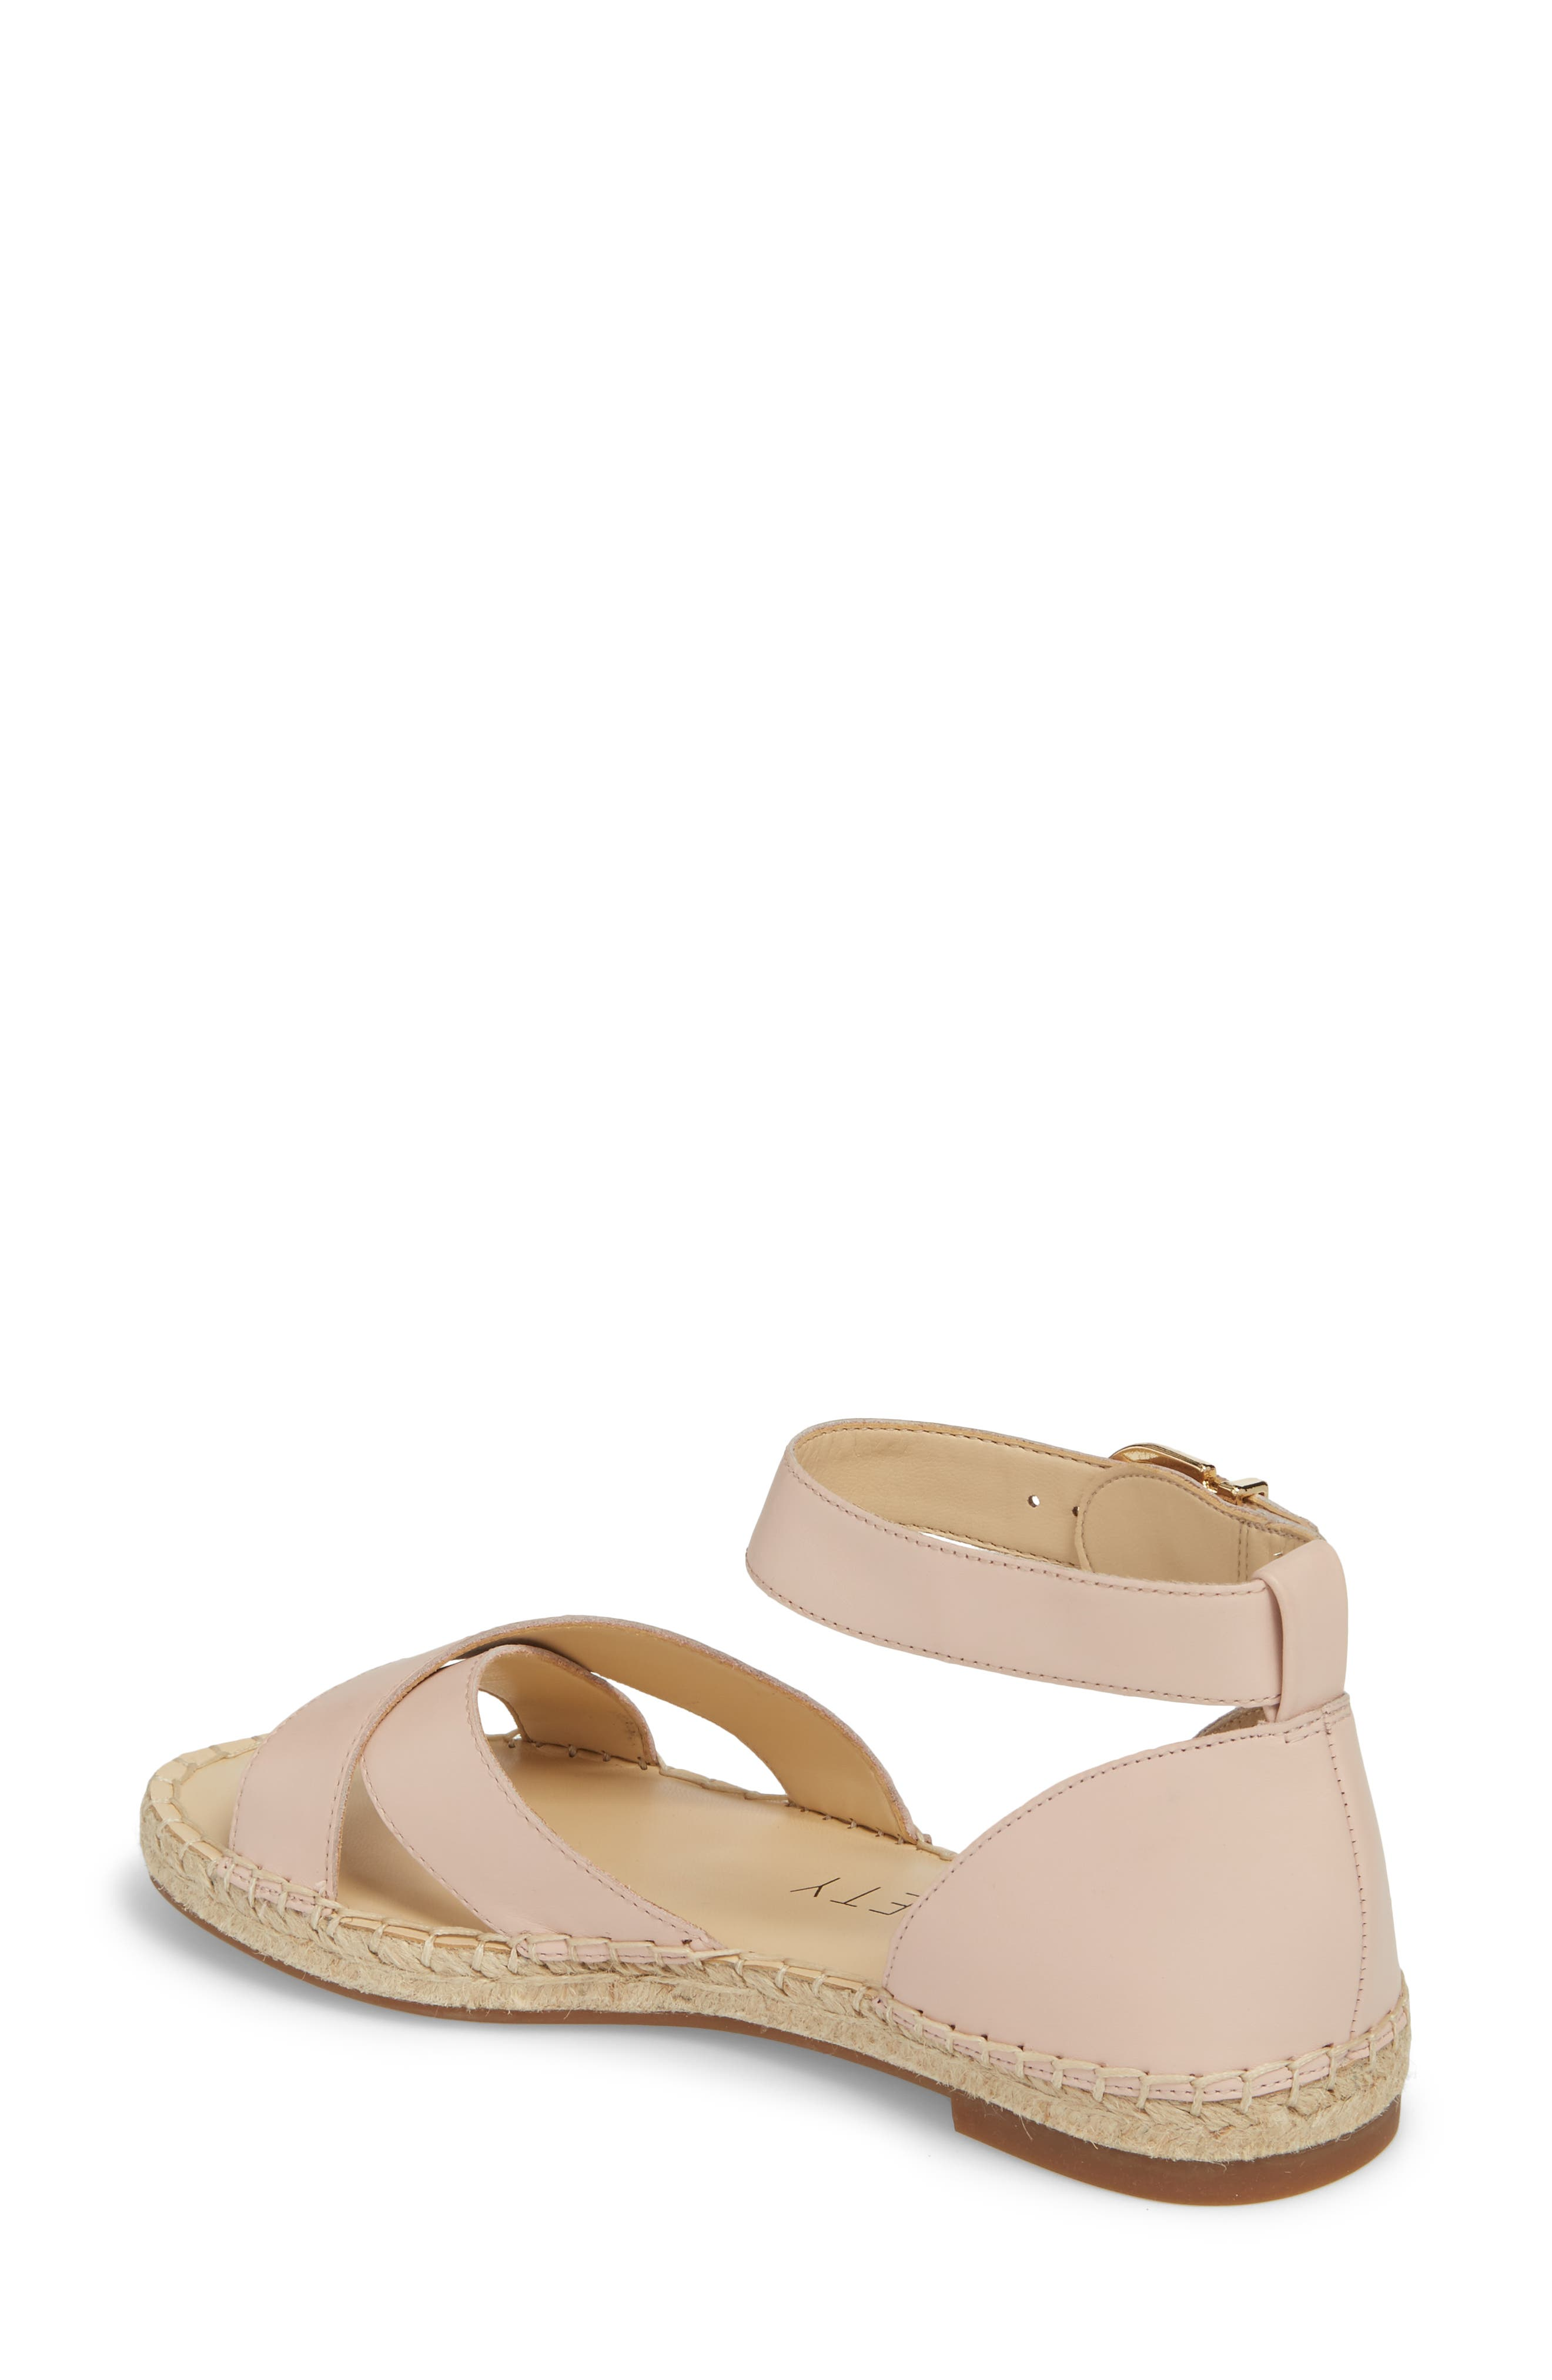 Saundra Espadrille Sandal,                             Alternate thumbnail 8, color,